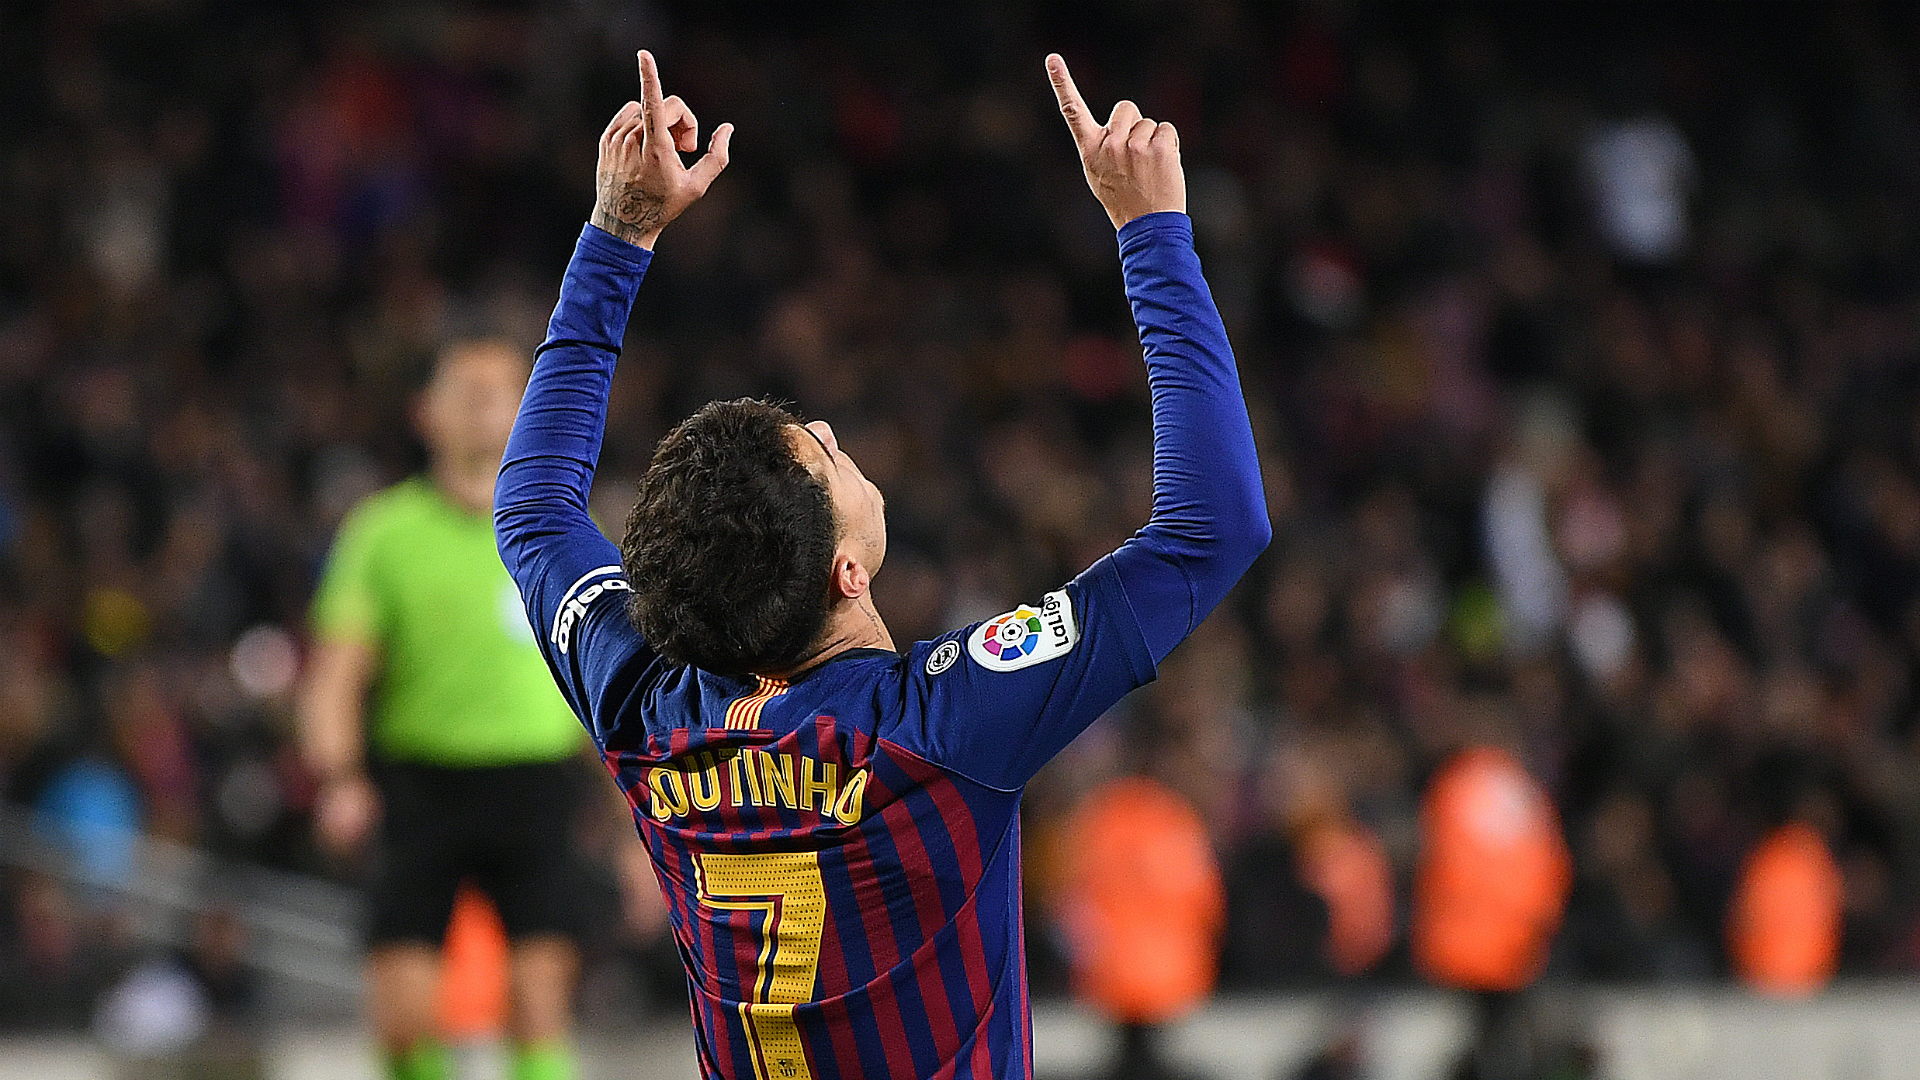 Barcelona 6 Sevilla 1 (6-3 agg): Coutinho at the double in Copa del Rey comeback